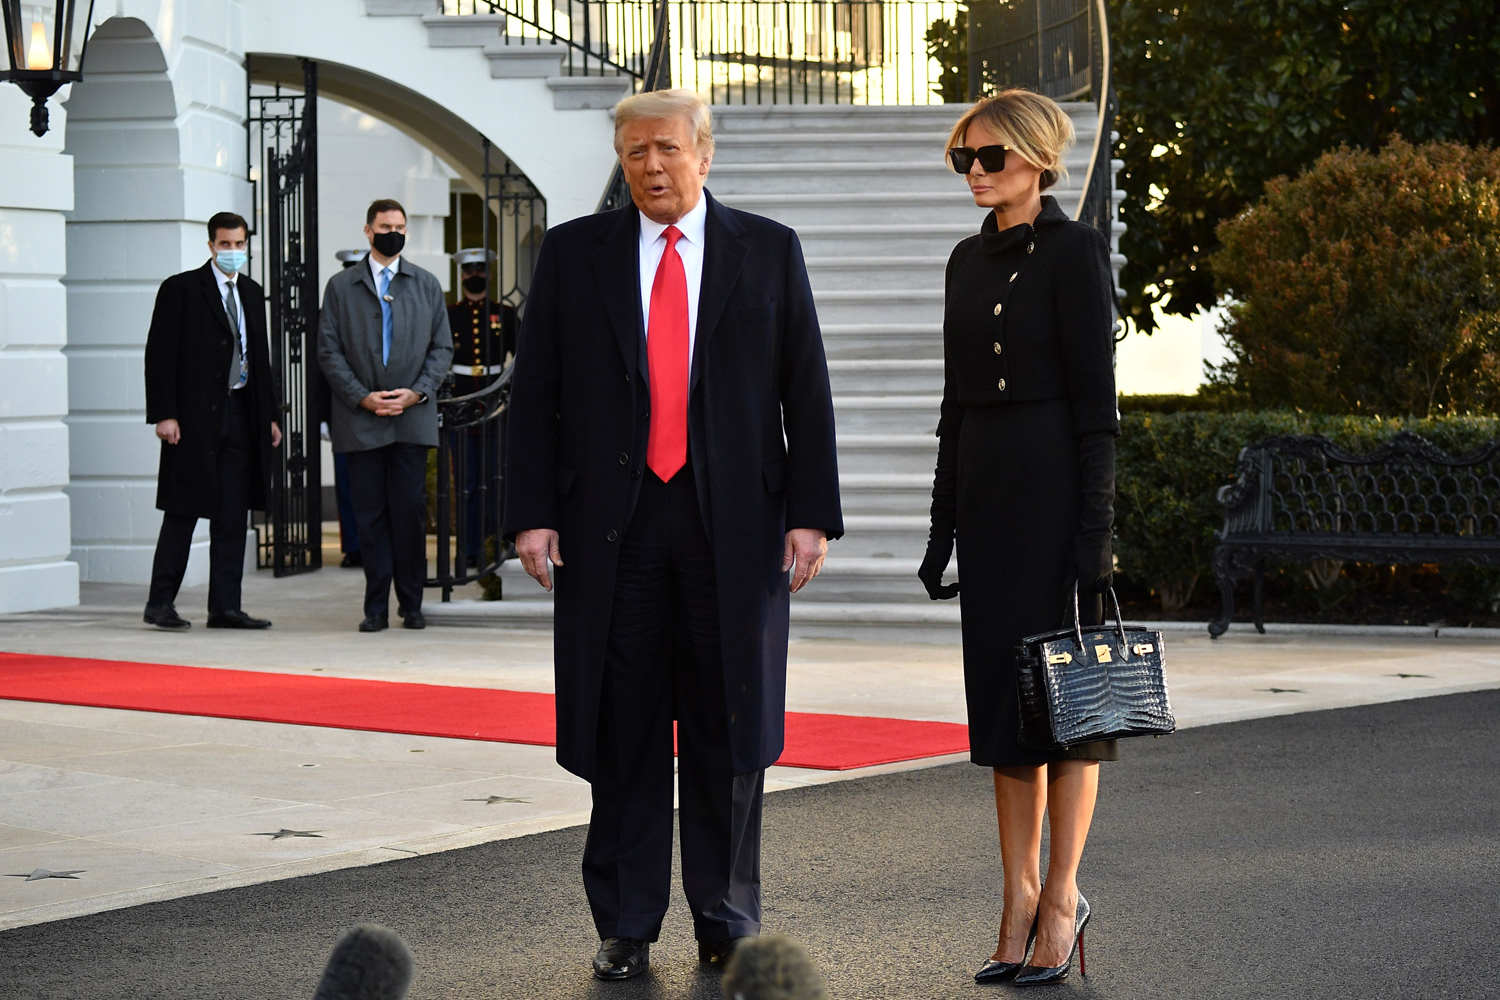 Outgoing US President Donald Trump and First Lady Melania Trump speak to the media depart the White House